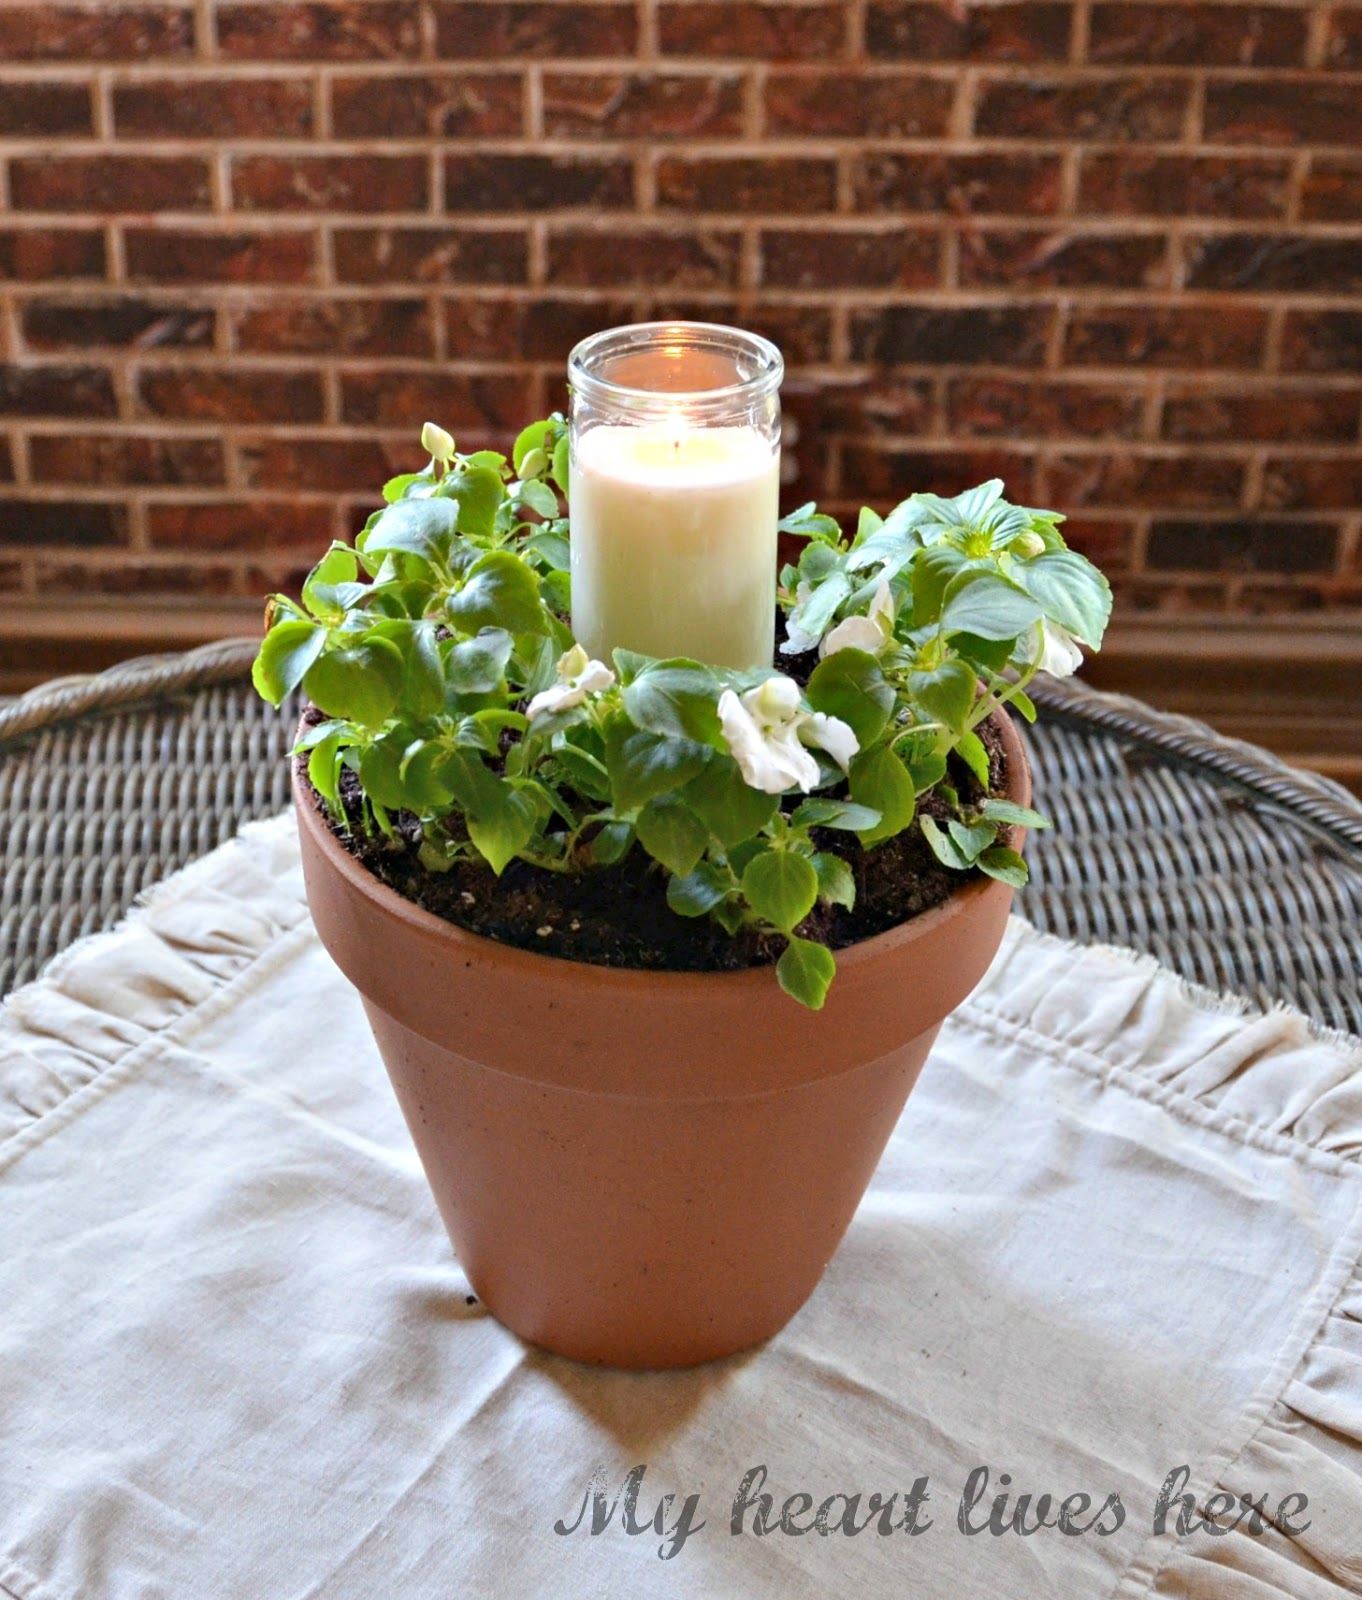 Flower pot candle my heart lives here i spent just under ten dollars at walmart to purchase the two flower pots two 6 packs of flowers and the white candle in glass izmirmasajfo Image collections